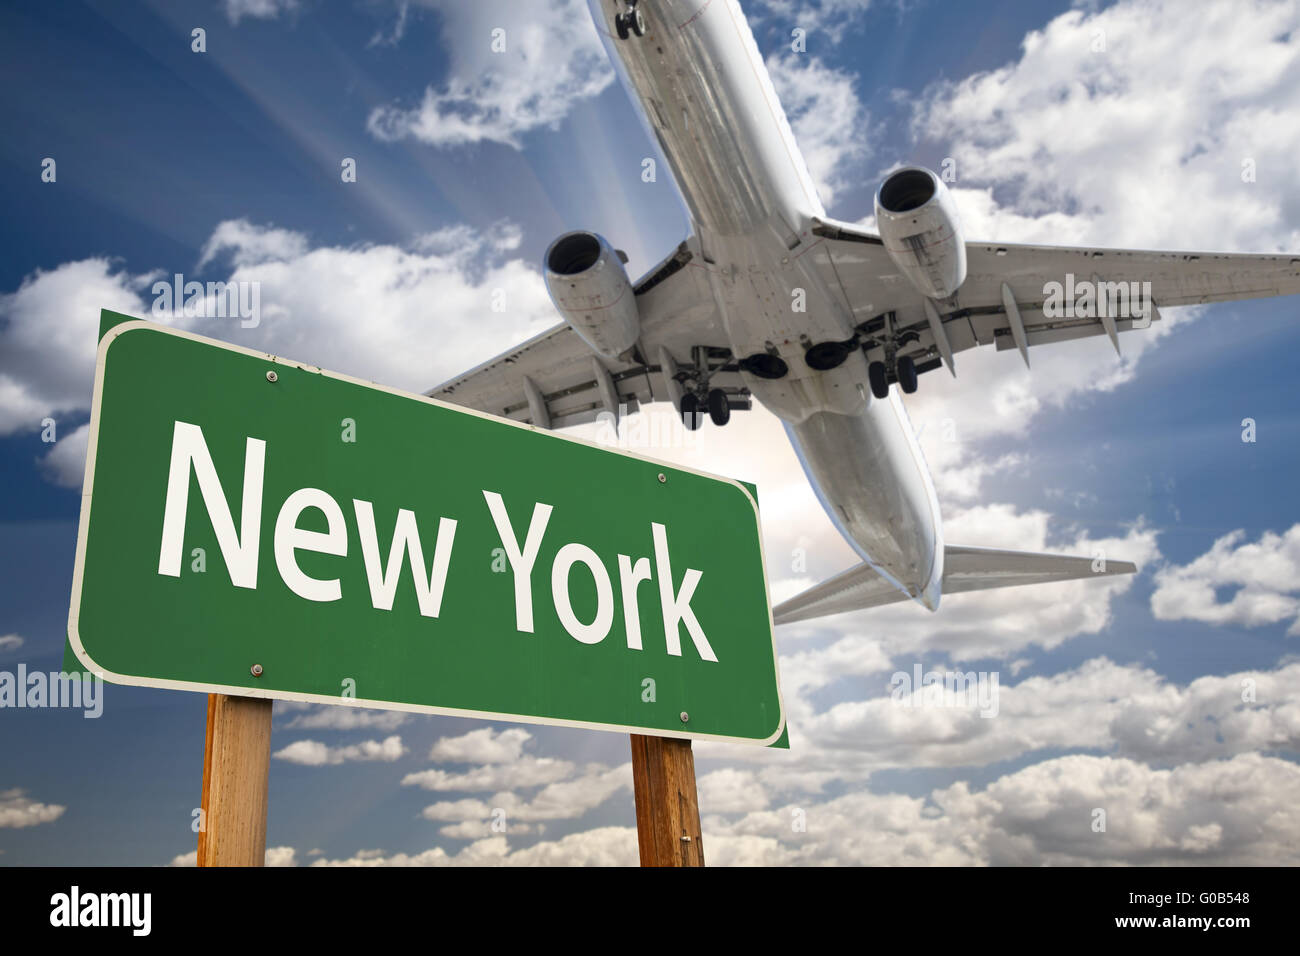 New York Green Road Sign and Airplane Above - Stock Image